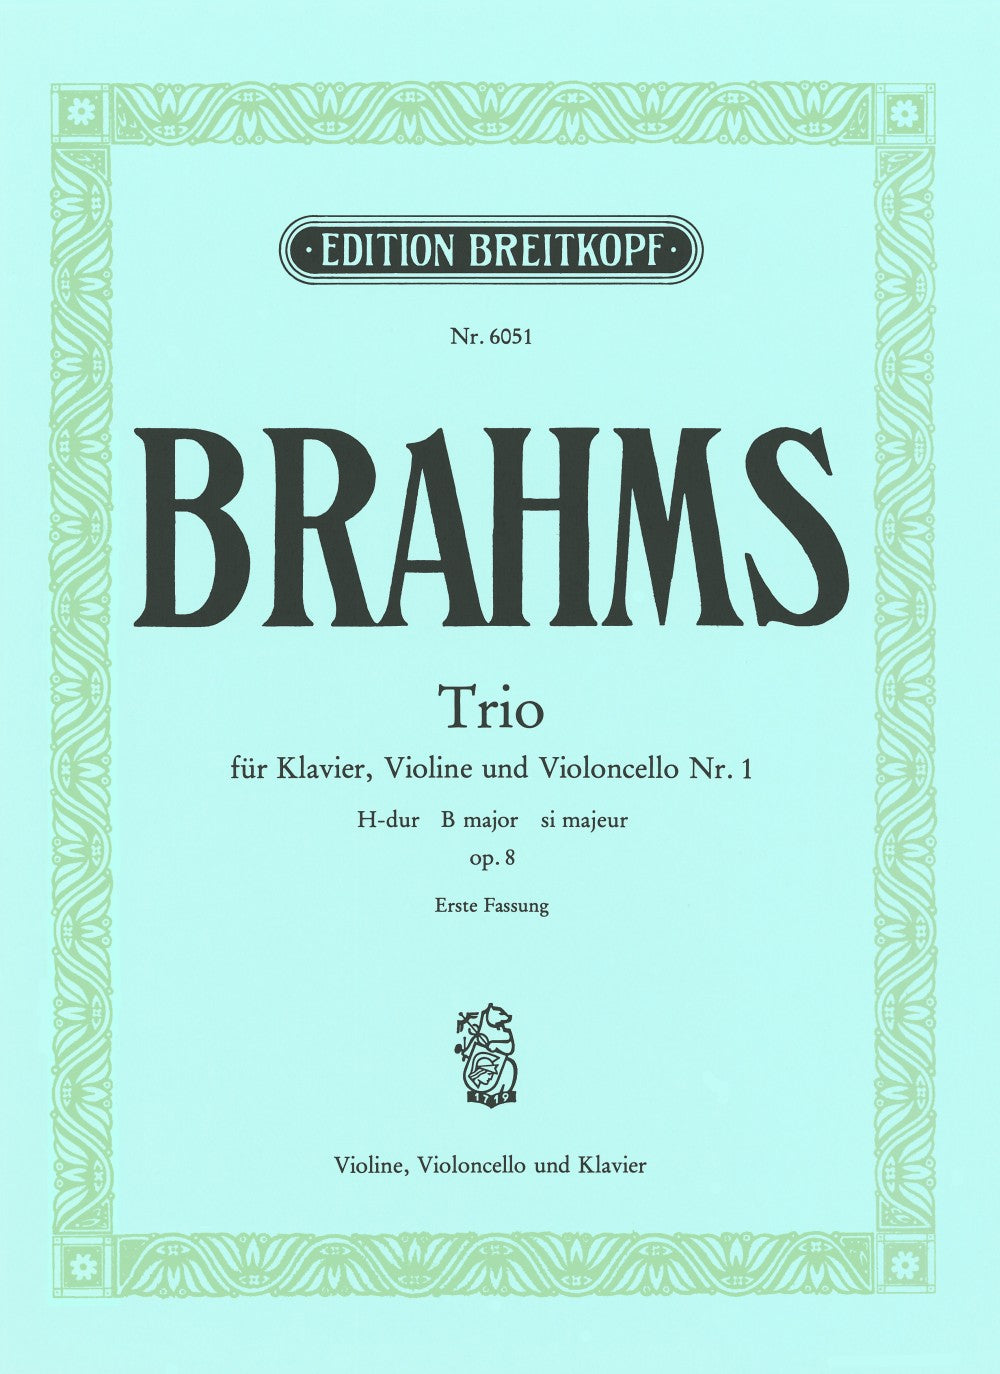 Brahms: Piano Trio No. 1 in B Major, Op. 8 (First Version)